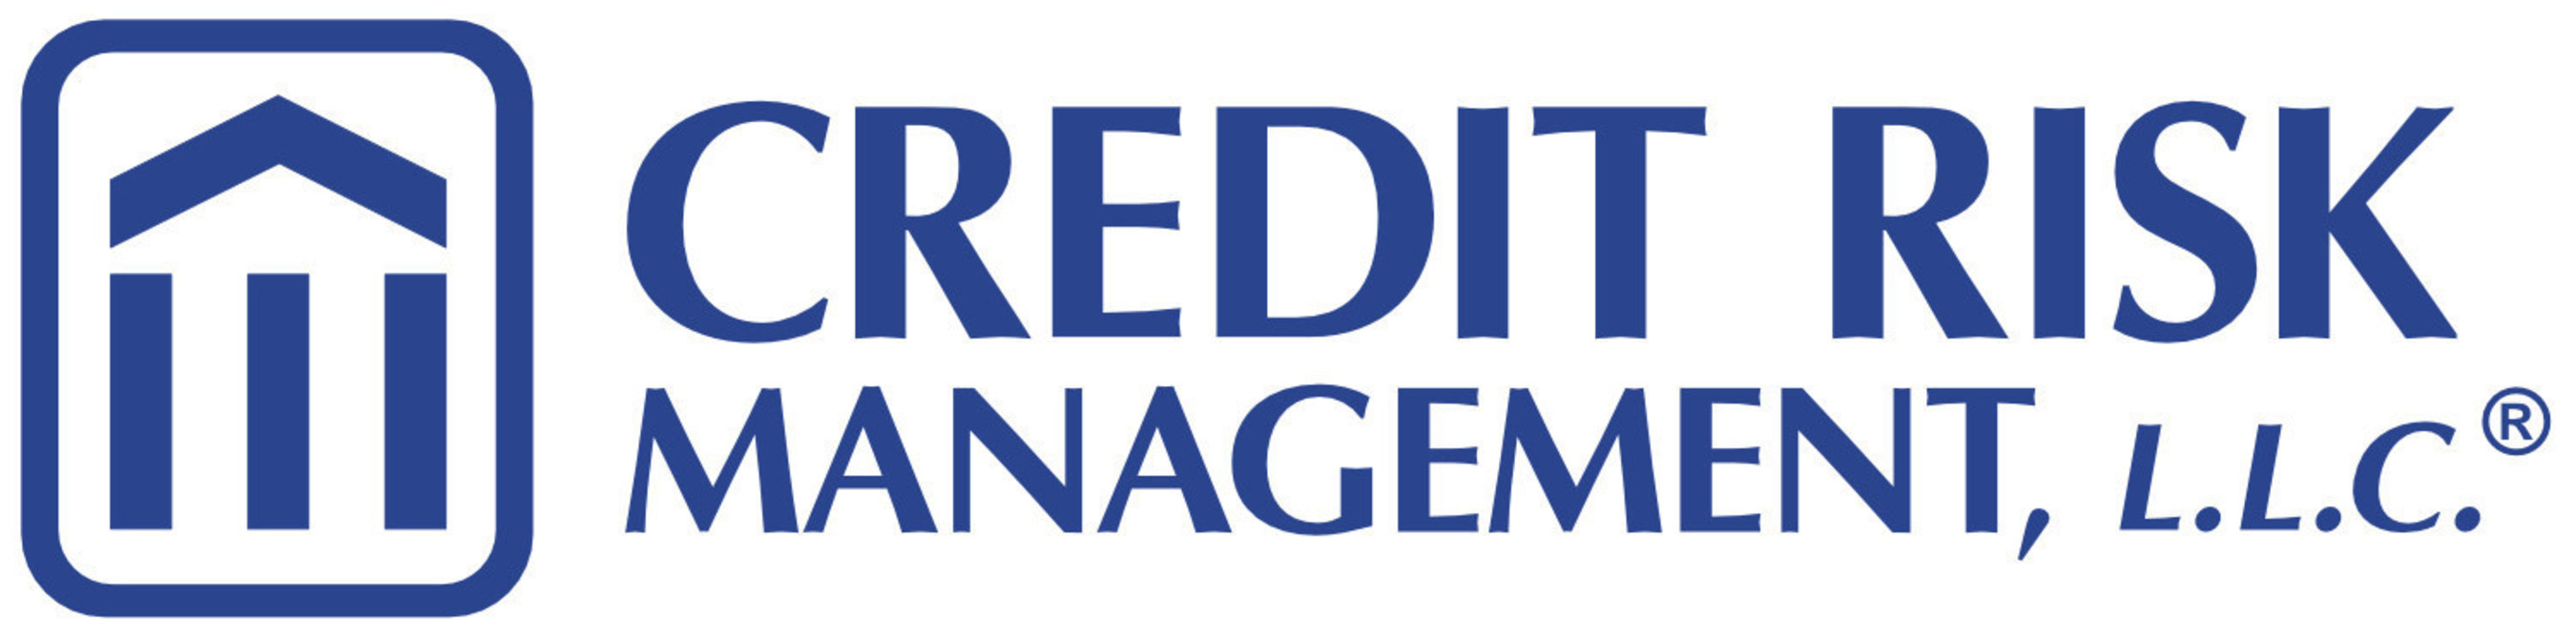 credit risk management for mongolian banks Is this the beginning of a new era of credit risk management technology mongolia gets new first deputy bis names financial stability institute a mongolian.